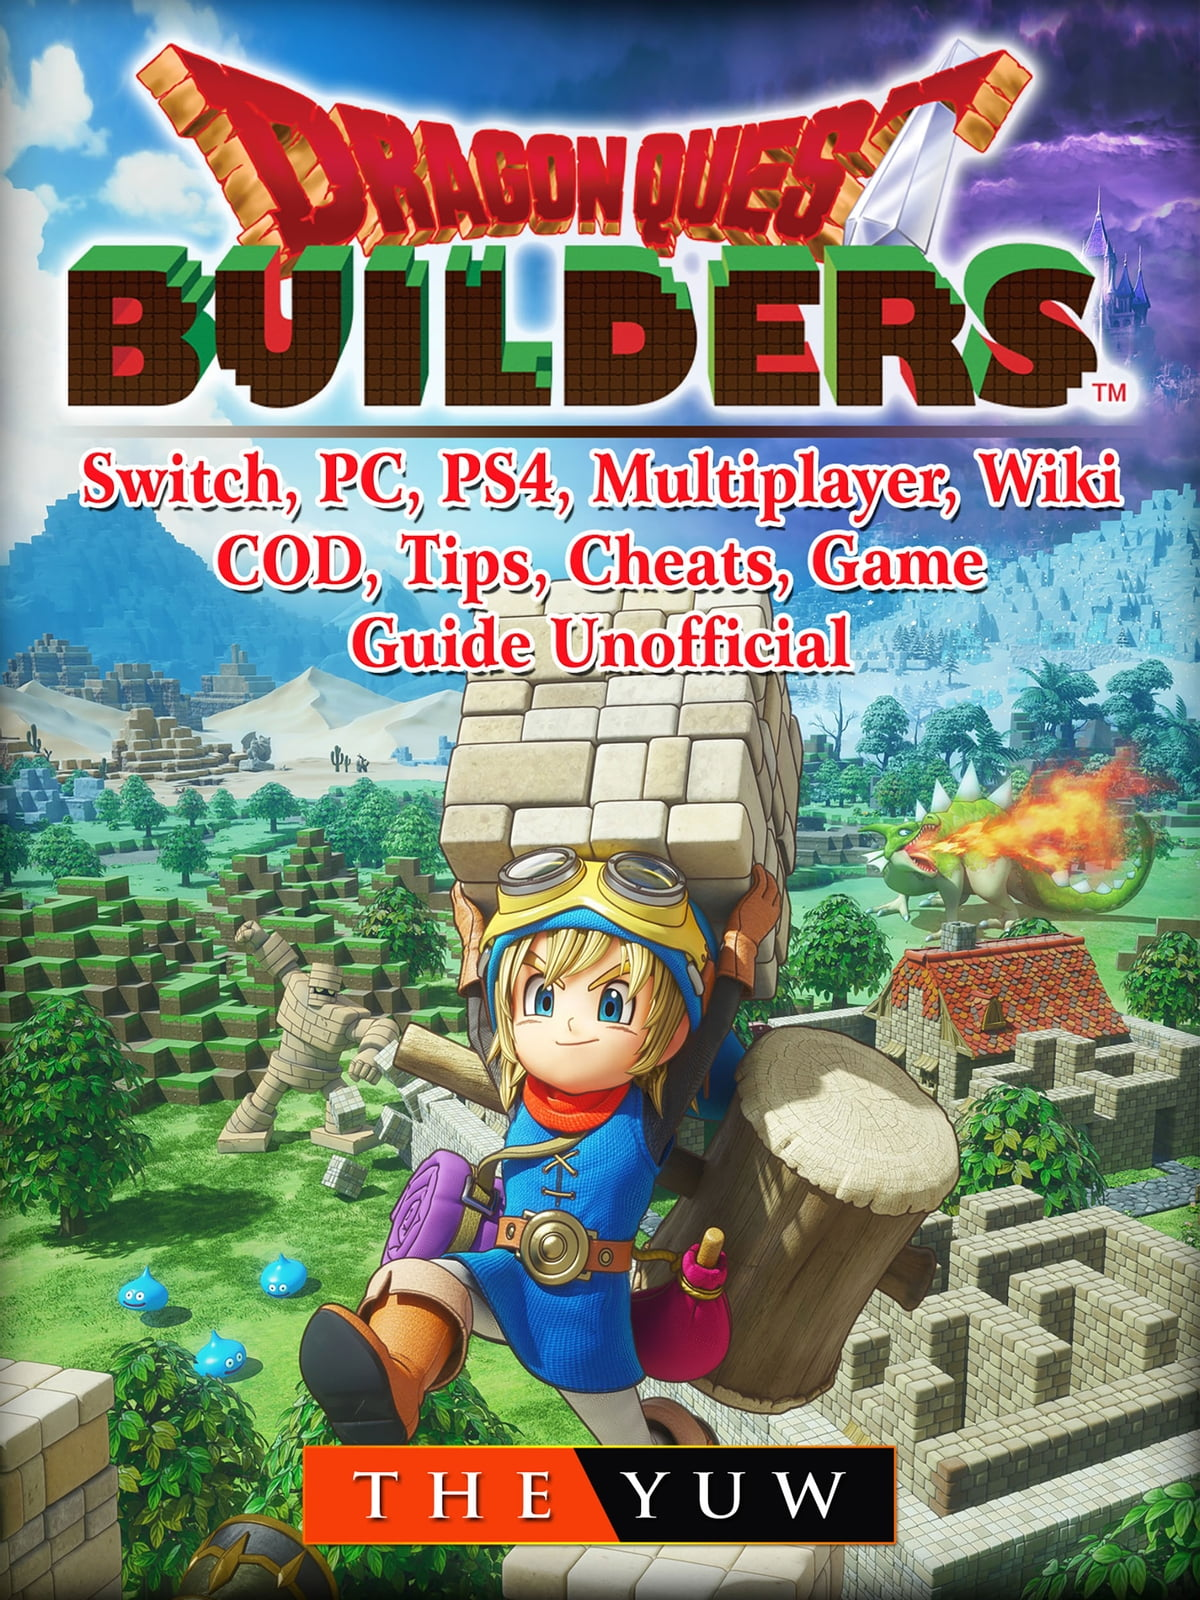 Dragon Quest Builders Switch Pc Ps4 Multiplayer Wiki Cod